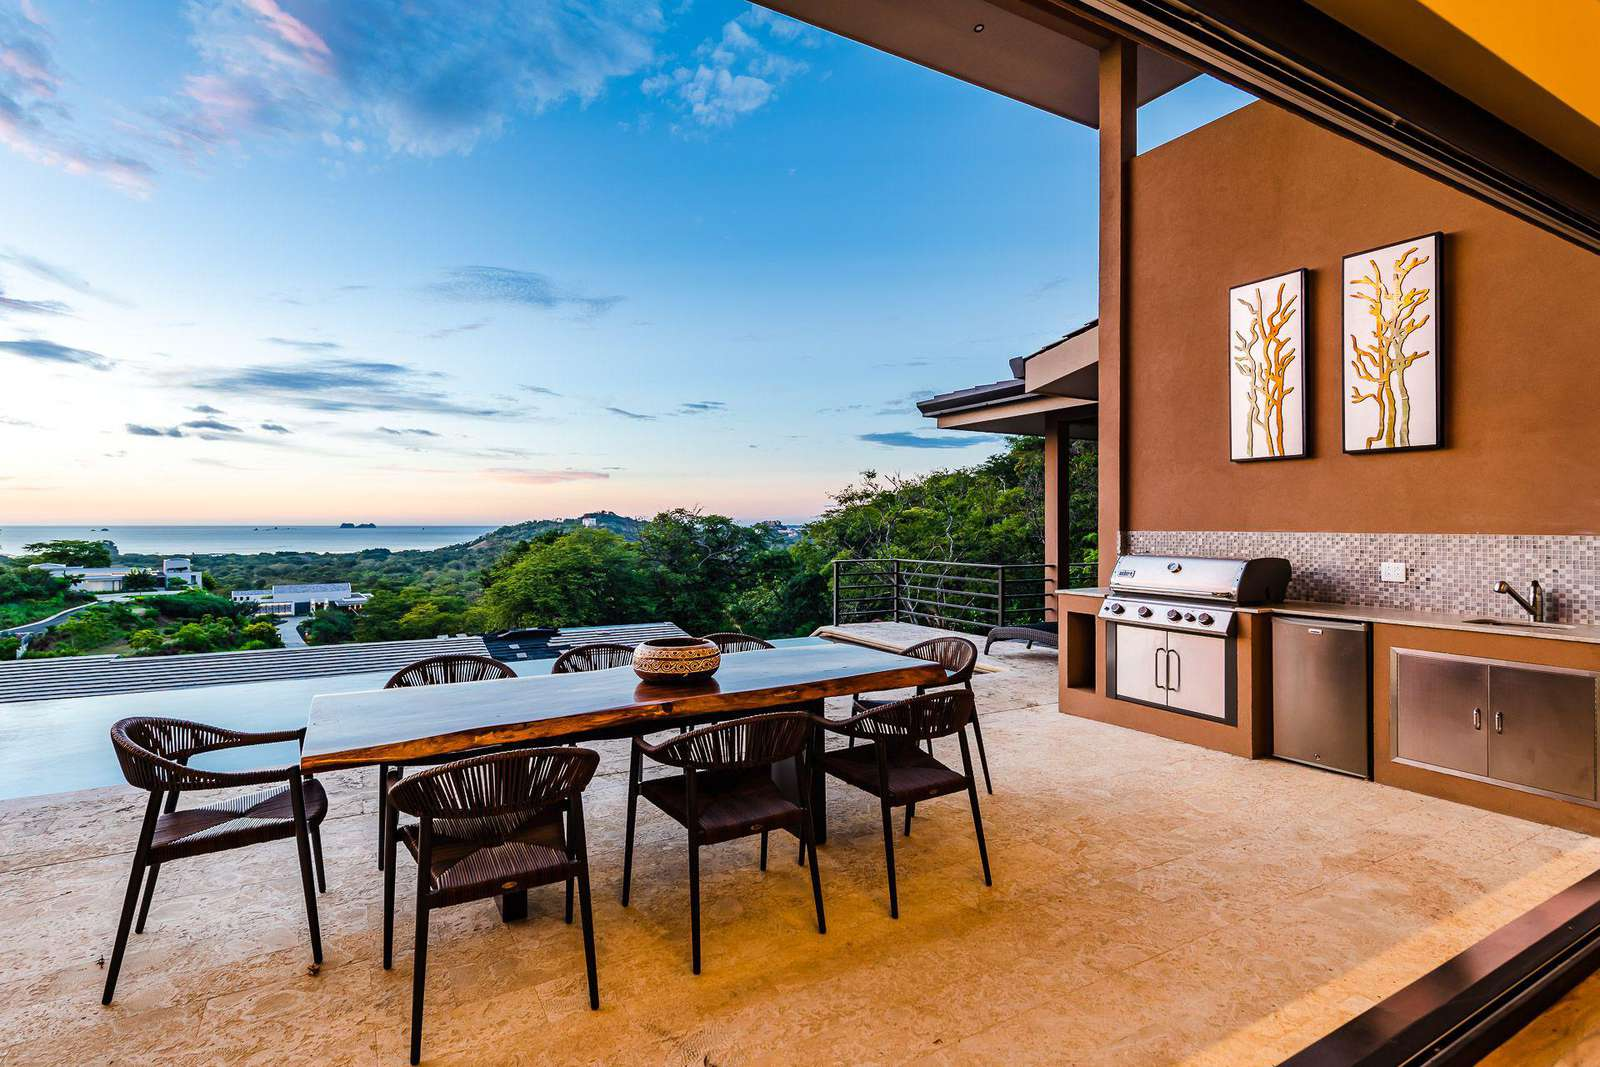 Outdoor dining area with a view